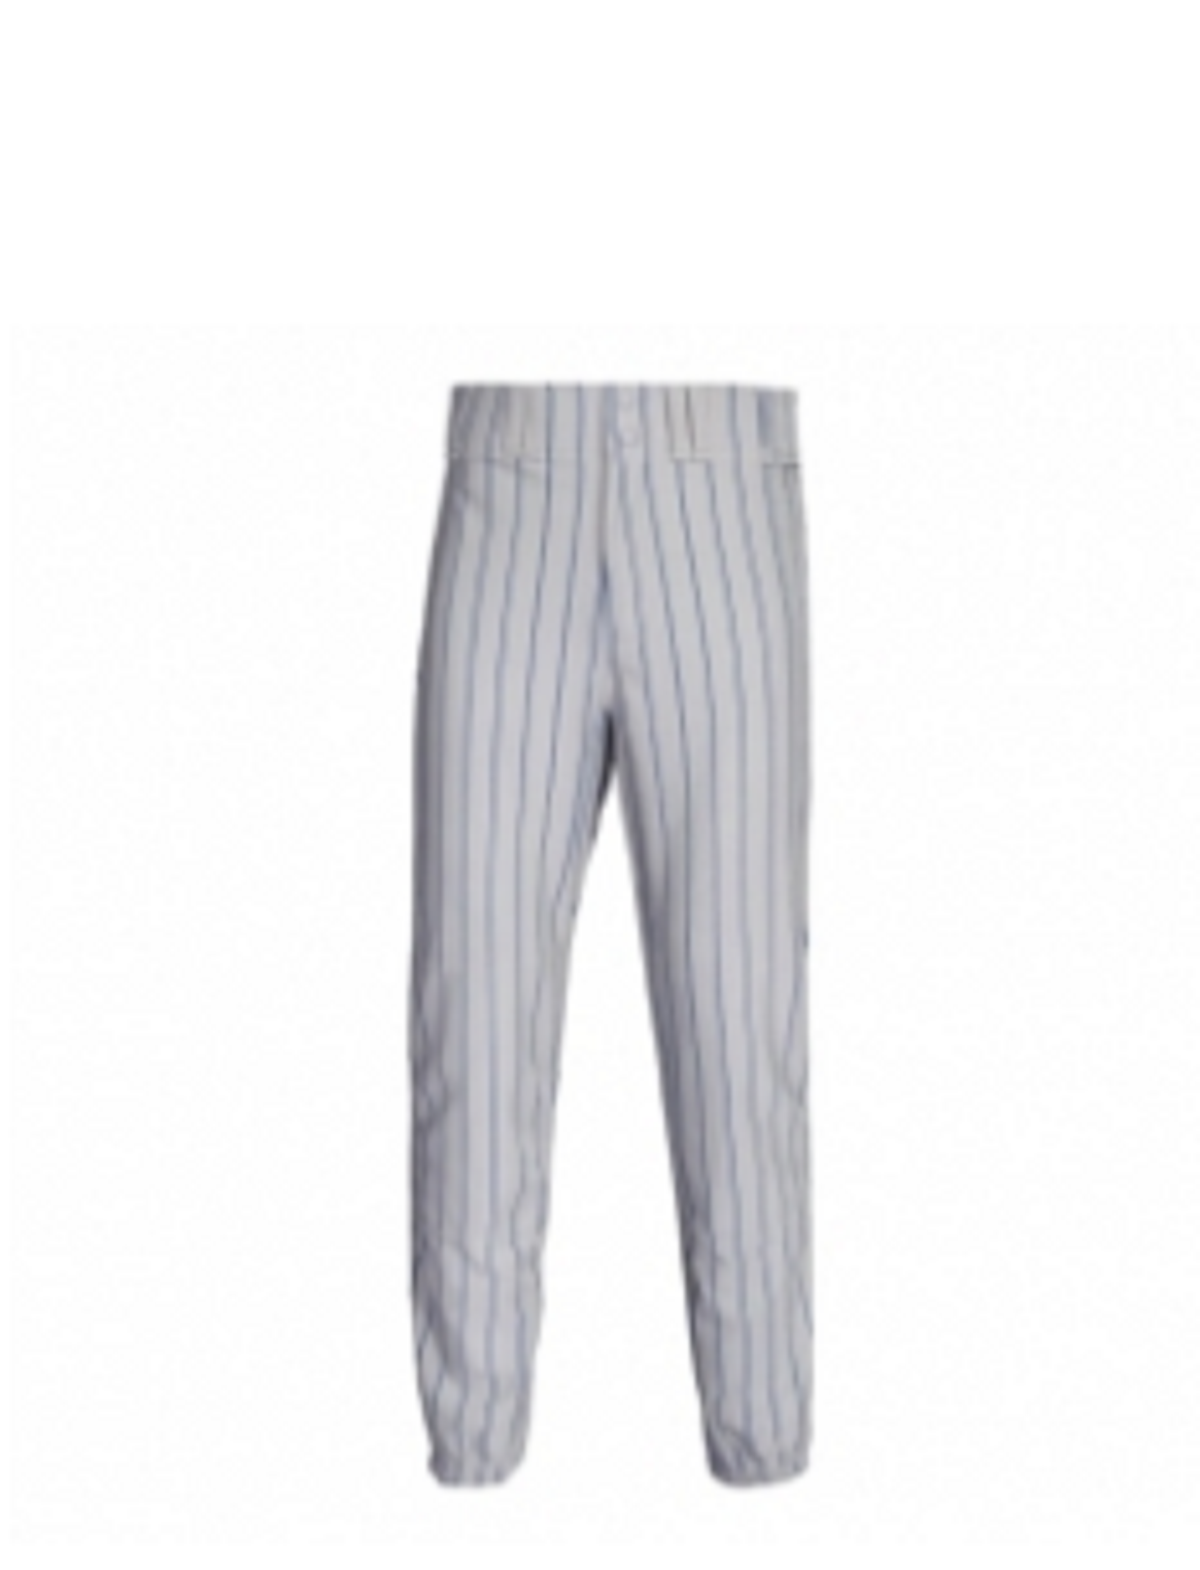 Baseball Uniform Trousers Model No TSI­5504